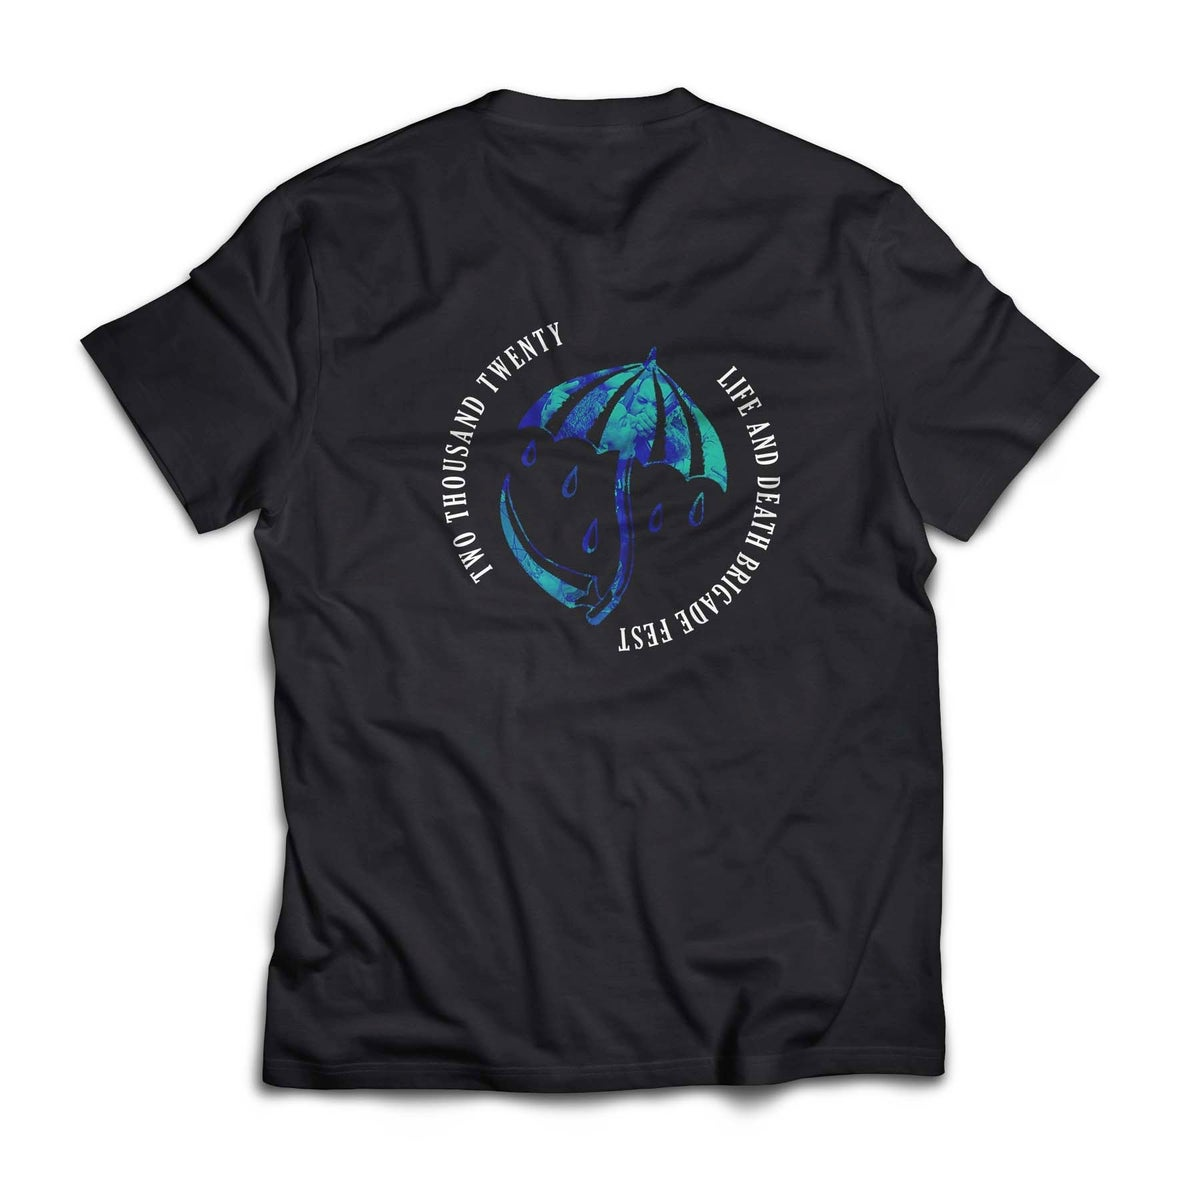 Image of LDB Fest 2020 Shirt Blue/Green Print